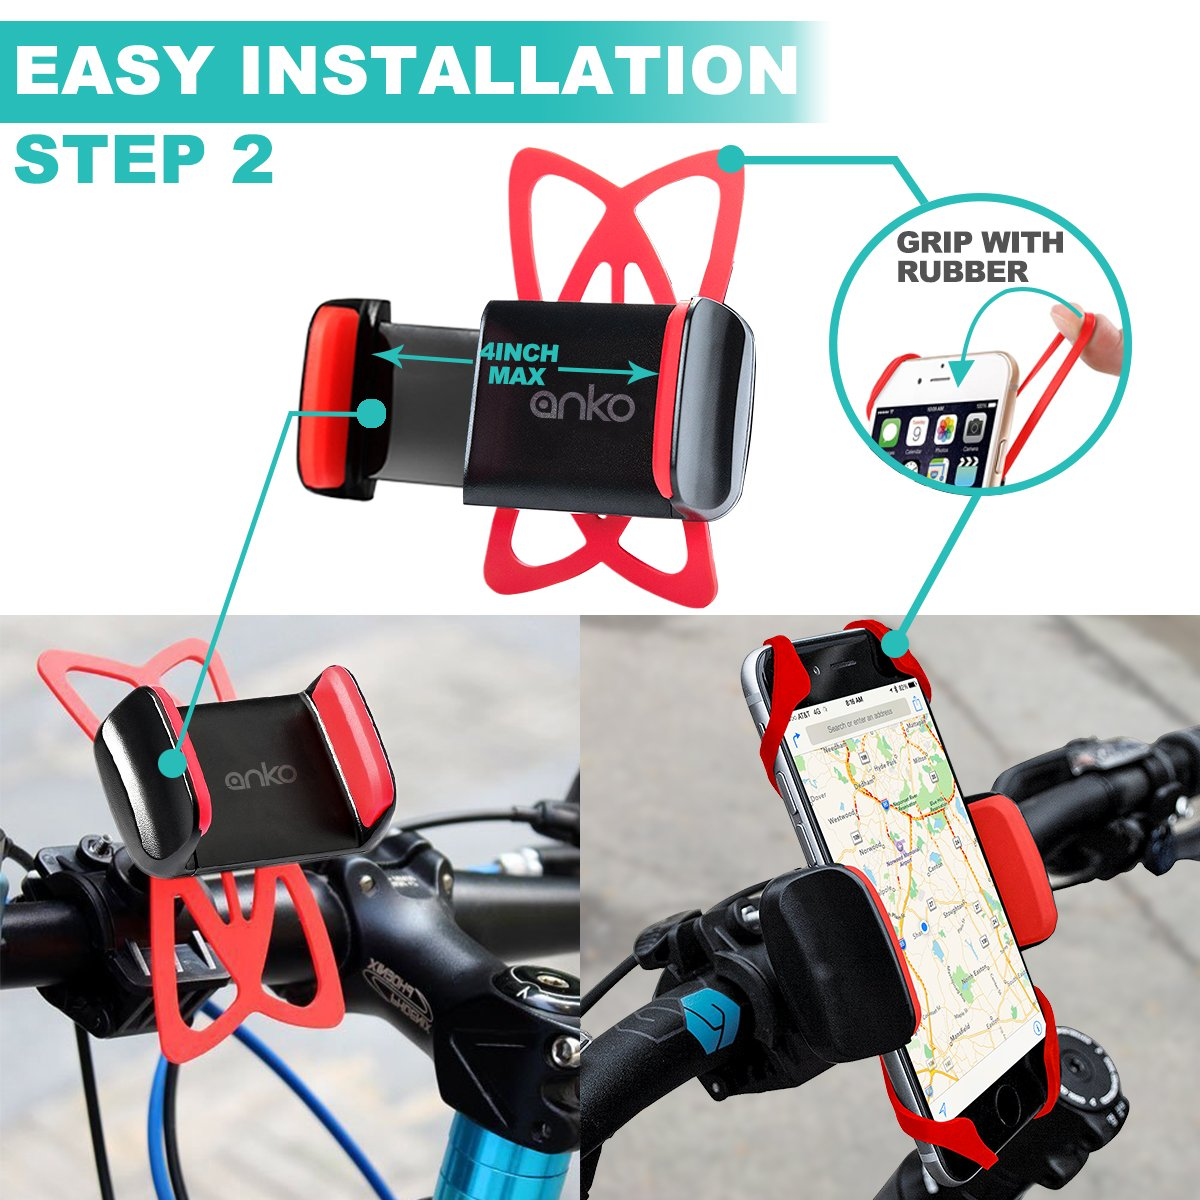 ANKO 360 Rotation Universal Premium Adjustable Phone Mount 7 Plus And More 4326590341 And More S5 Holds Phones Up To 3.5 Wide. Galaxy S7 1 PACK Suit For iPhone 7 1 PACK Holds Phones Up To 3.5 Wide. Bicycle//Motorcycle Phone Mount S6